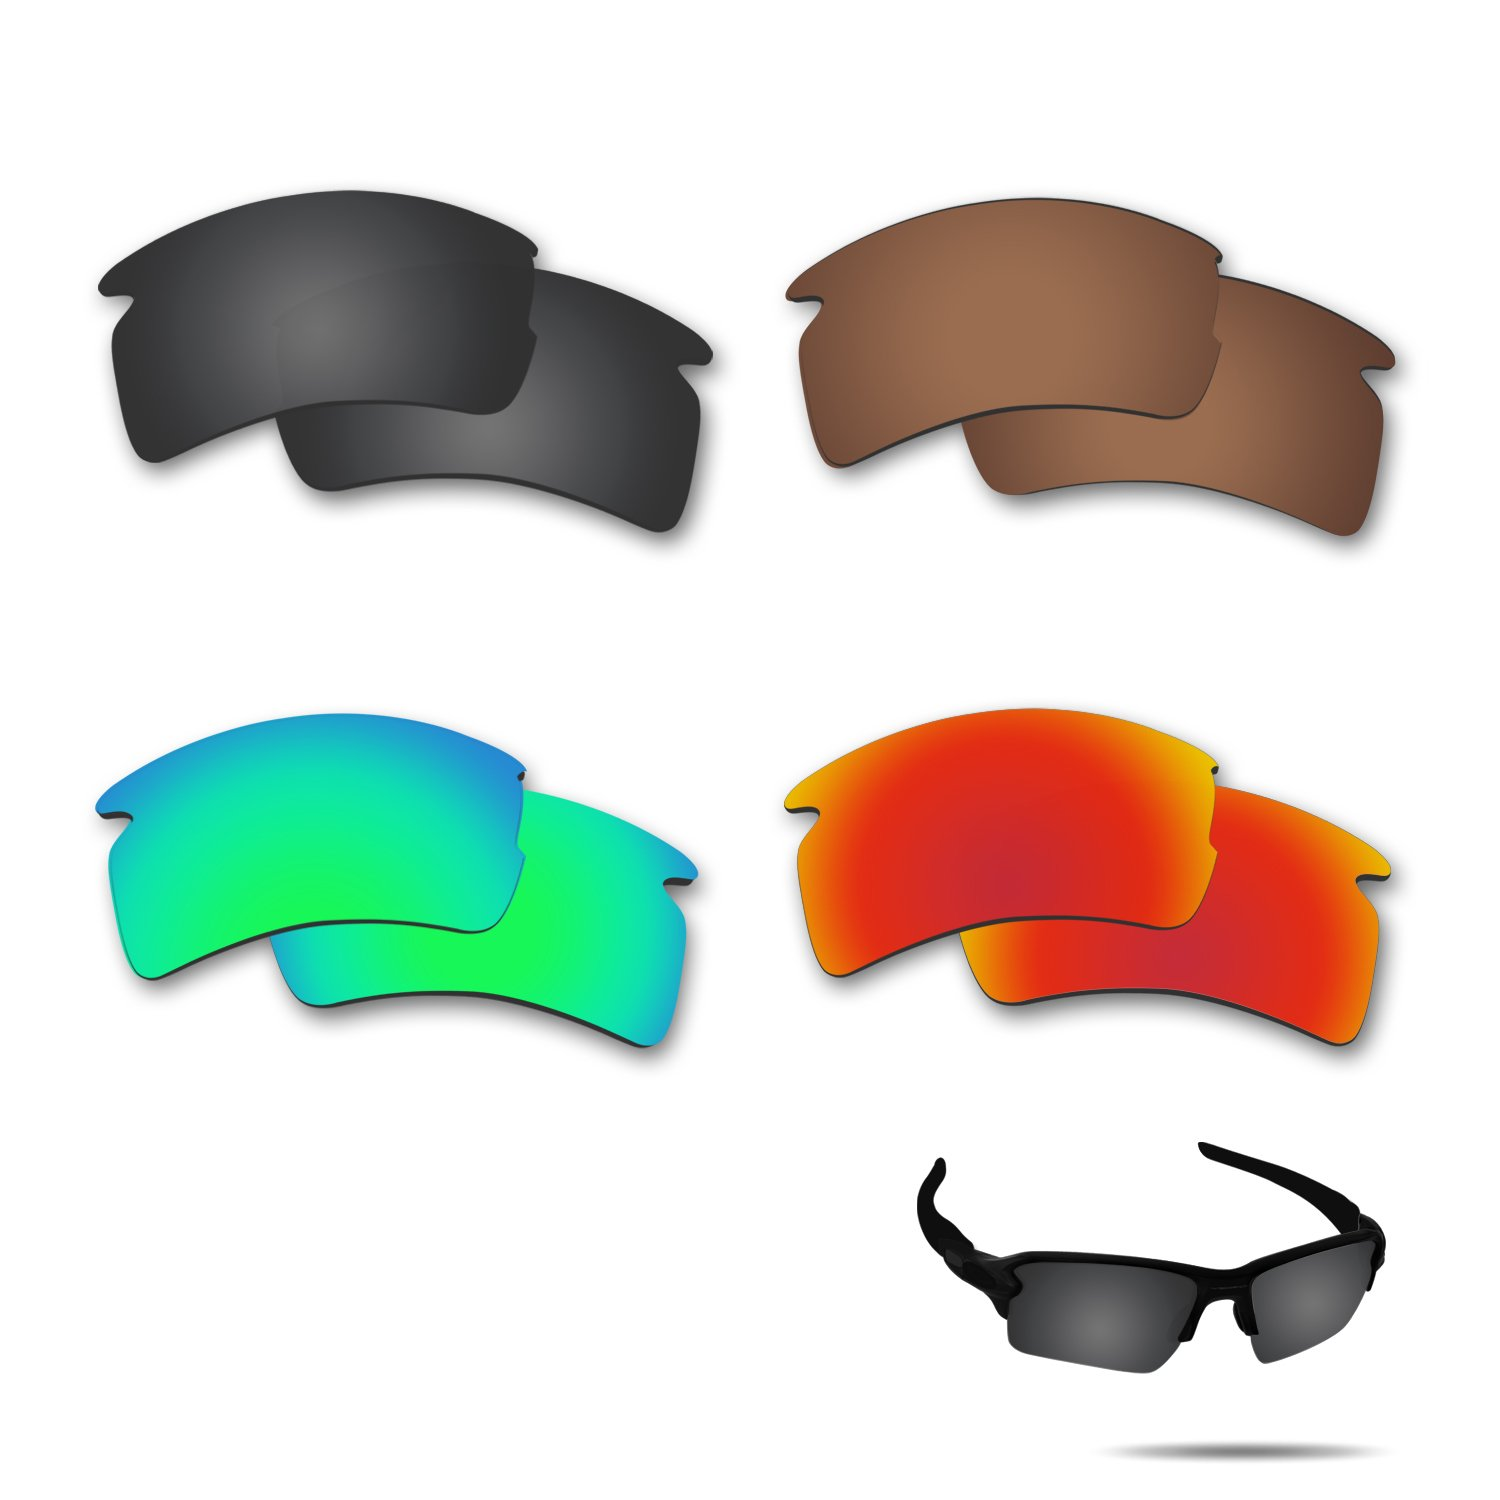 Fiskr Anti-saltwater Polarized Replacement Lenses for Oakley Flak 2.0 XL Sunglasses 4 Pairs